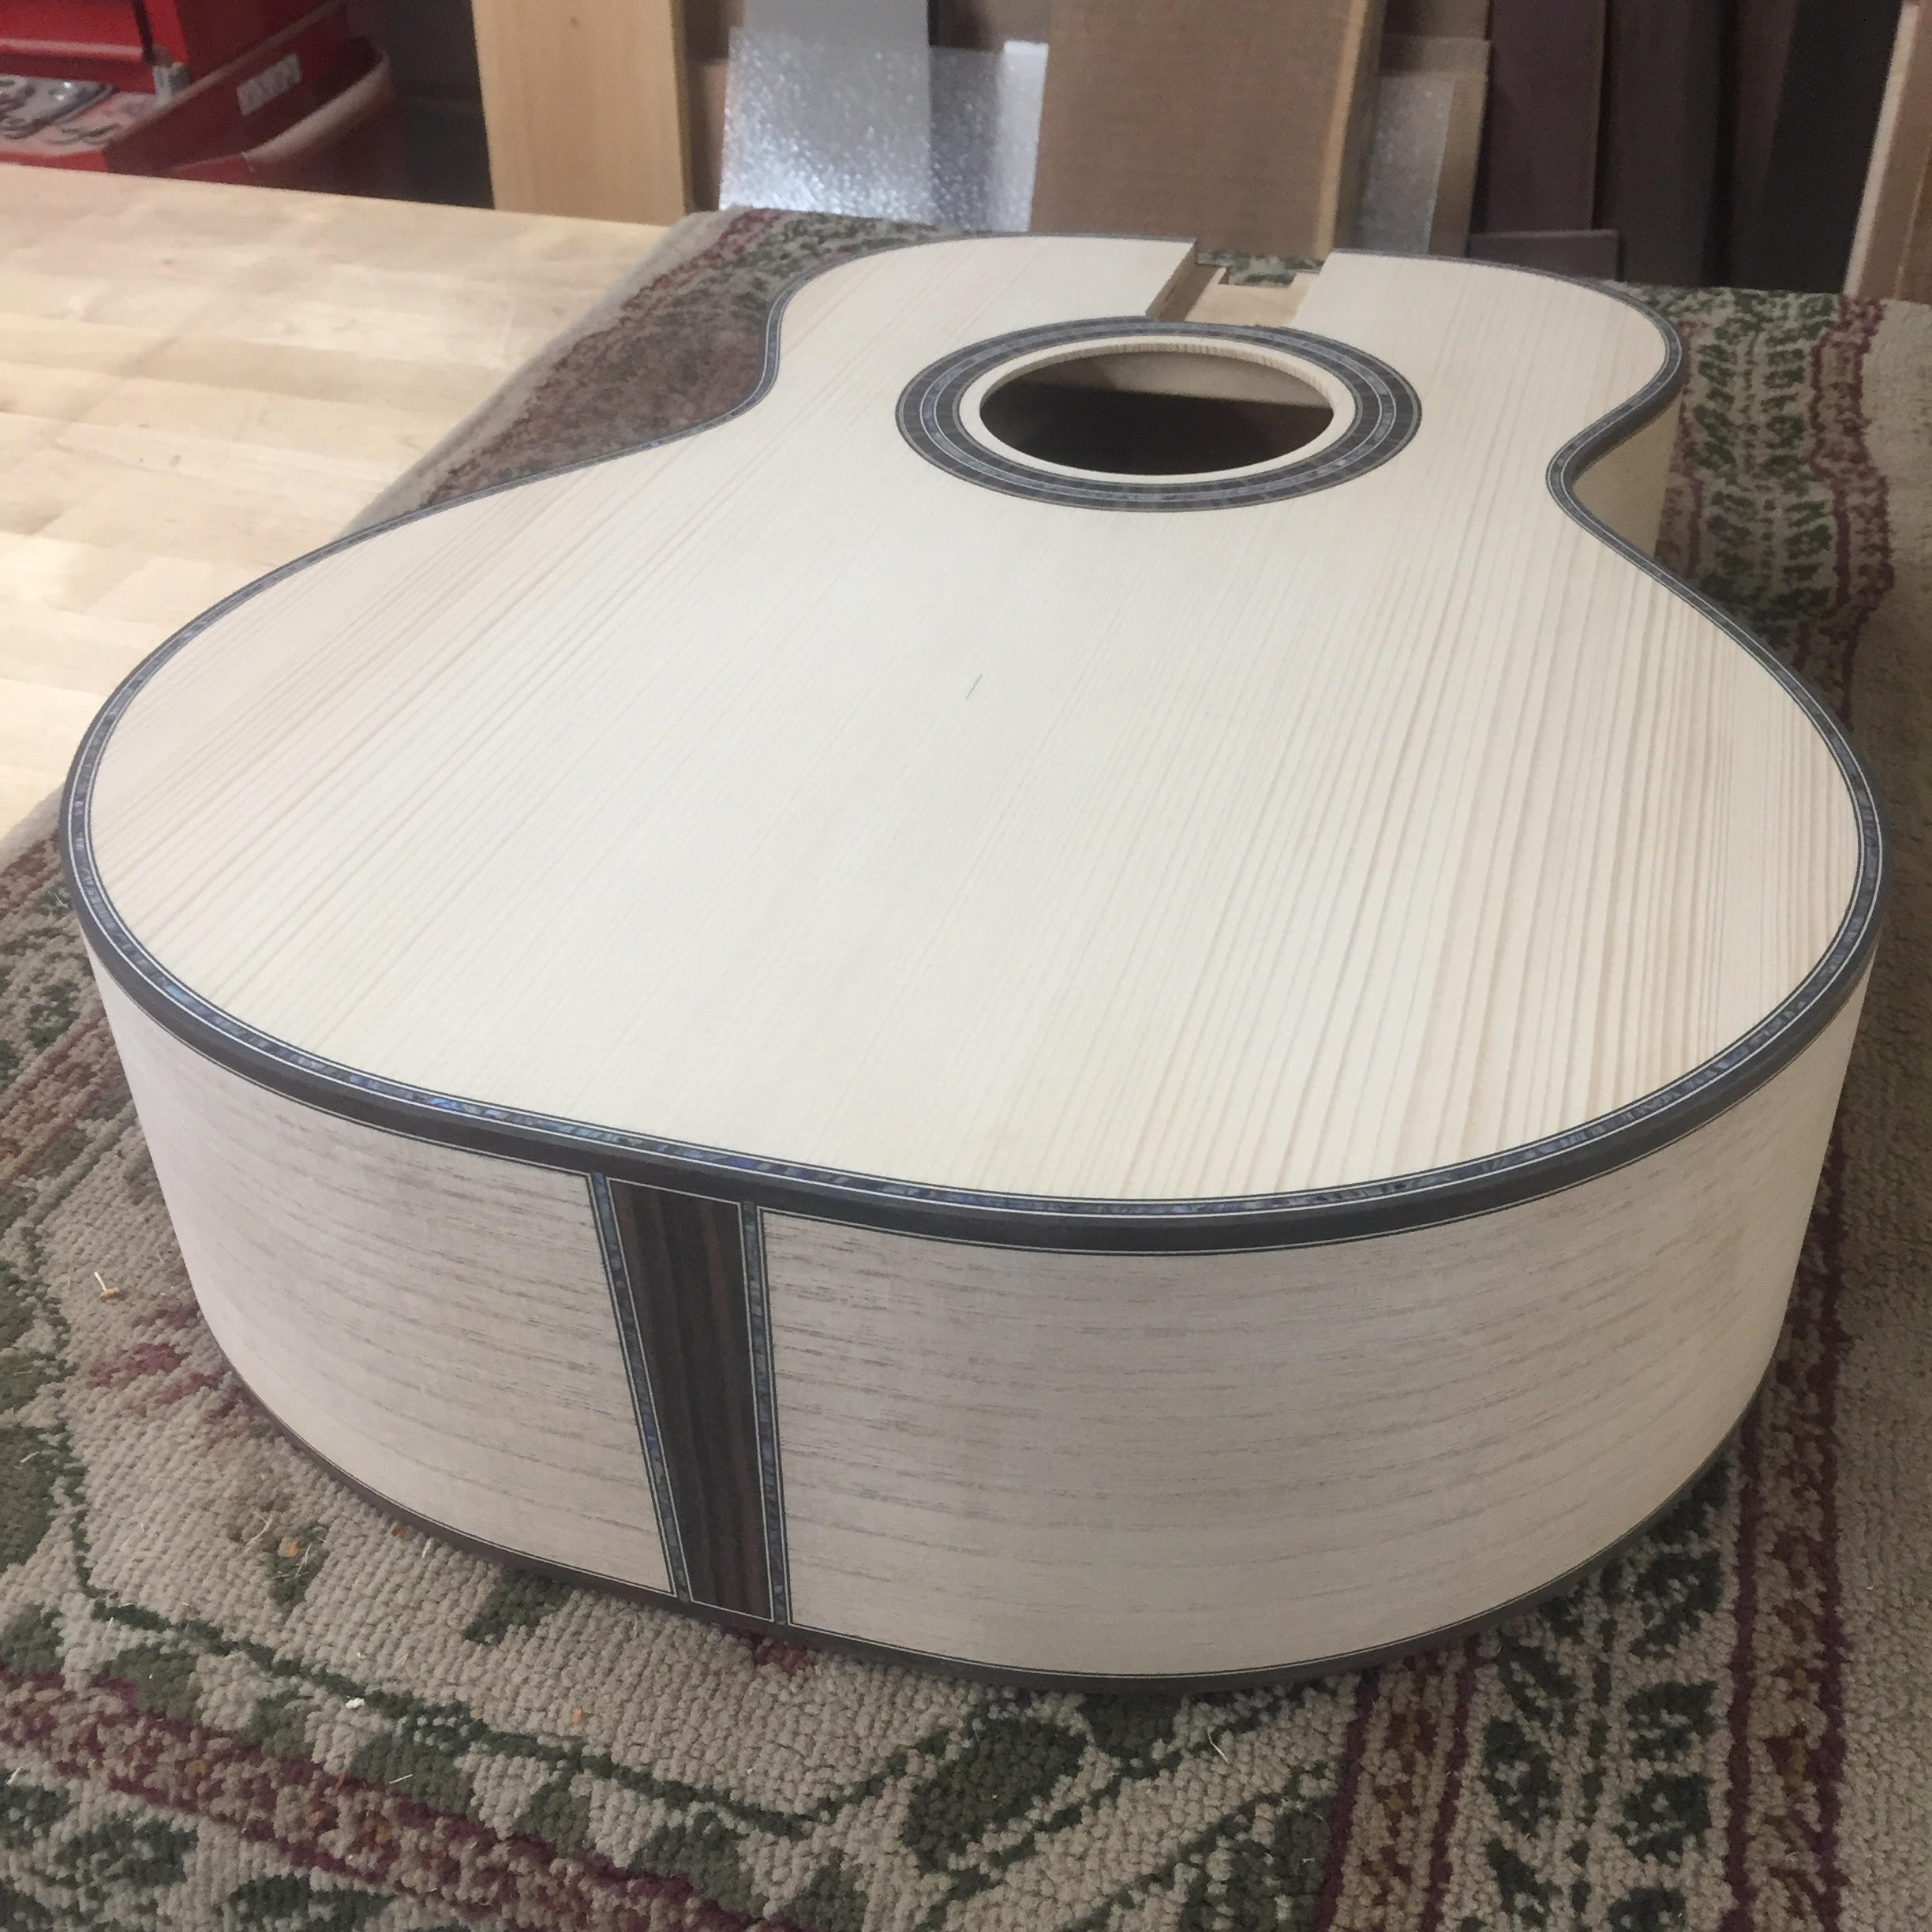 Caption: Guitar made with powlownia wood